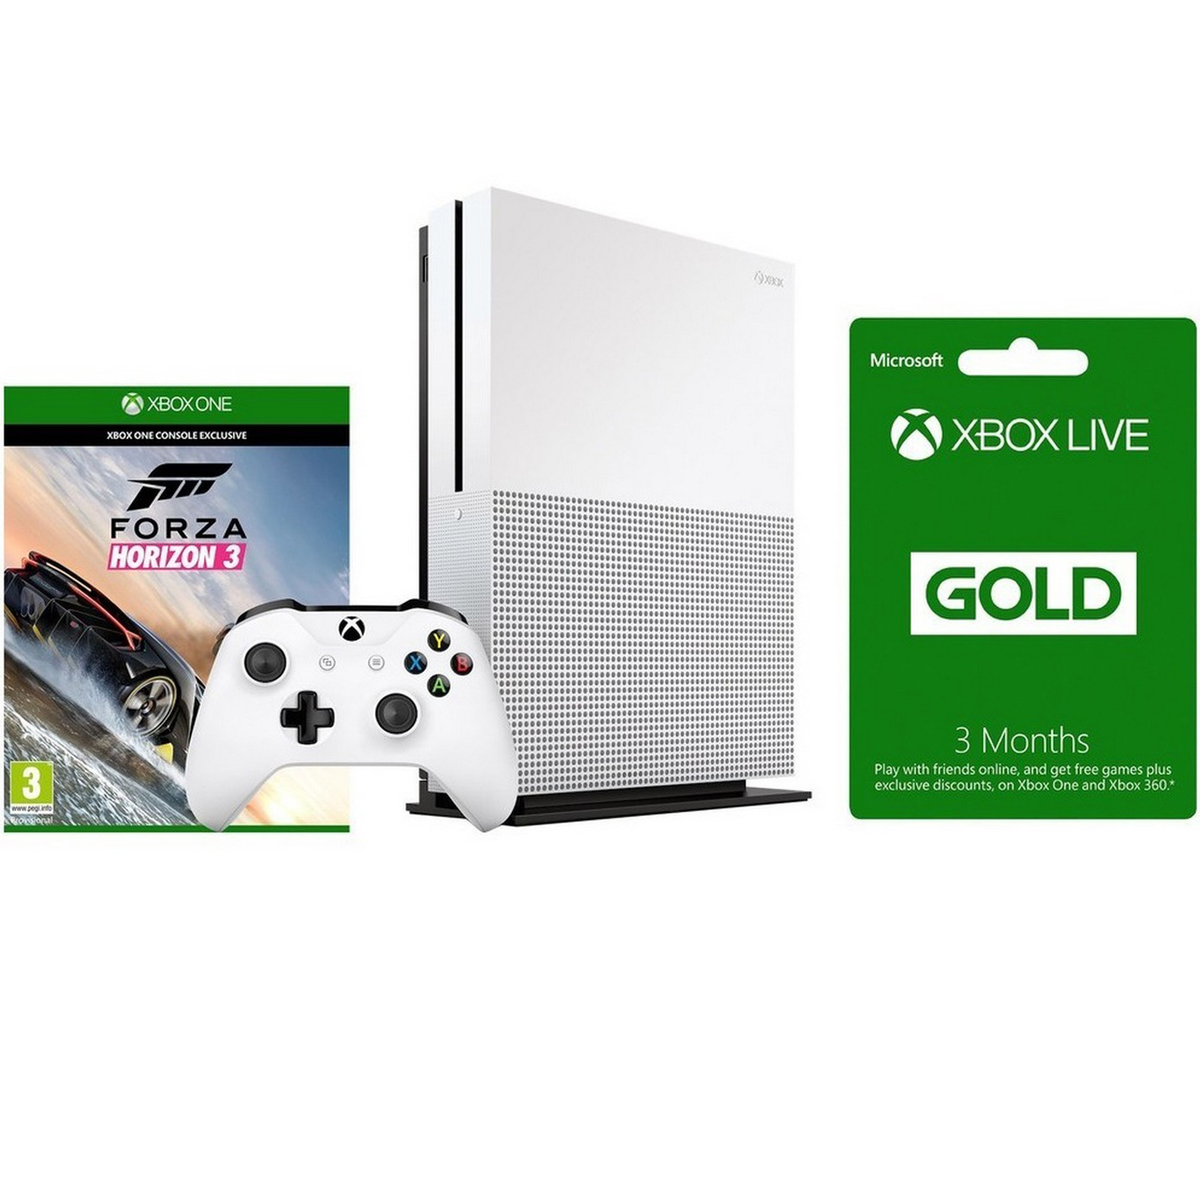 Buy Xbox One S Console 500GB + Forza Horizon 3 + 3 months live gold